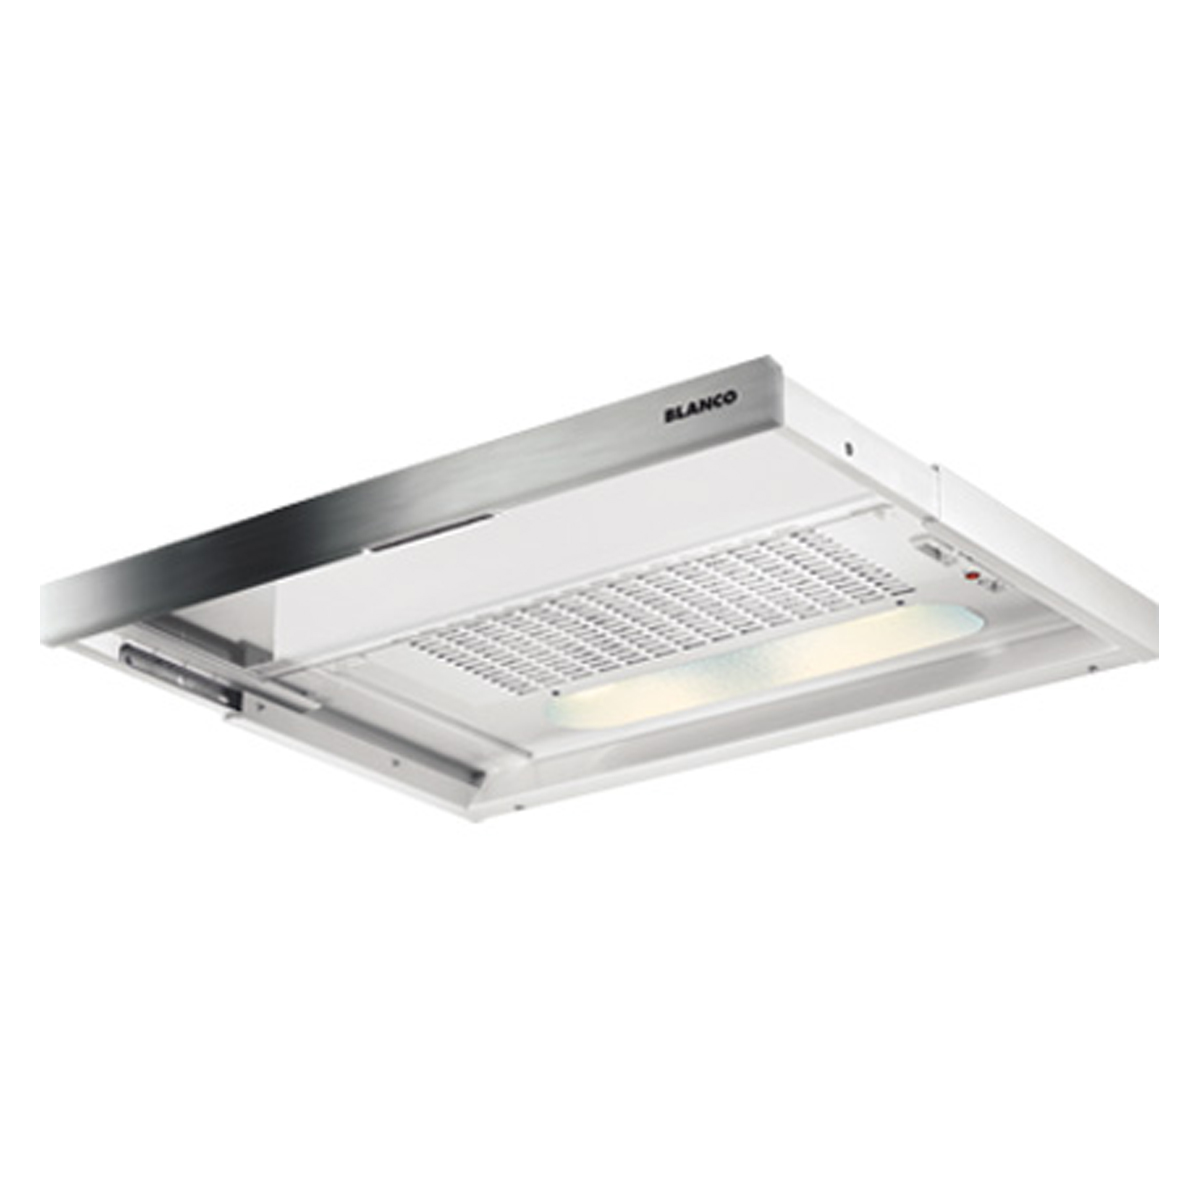 Blanco BRS60PX Stainless Steel 60Cm Single Motor Slideout Rangehood